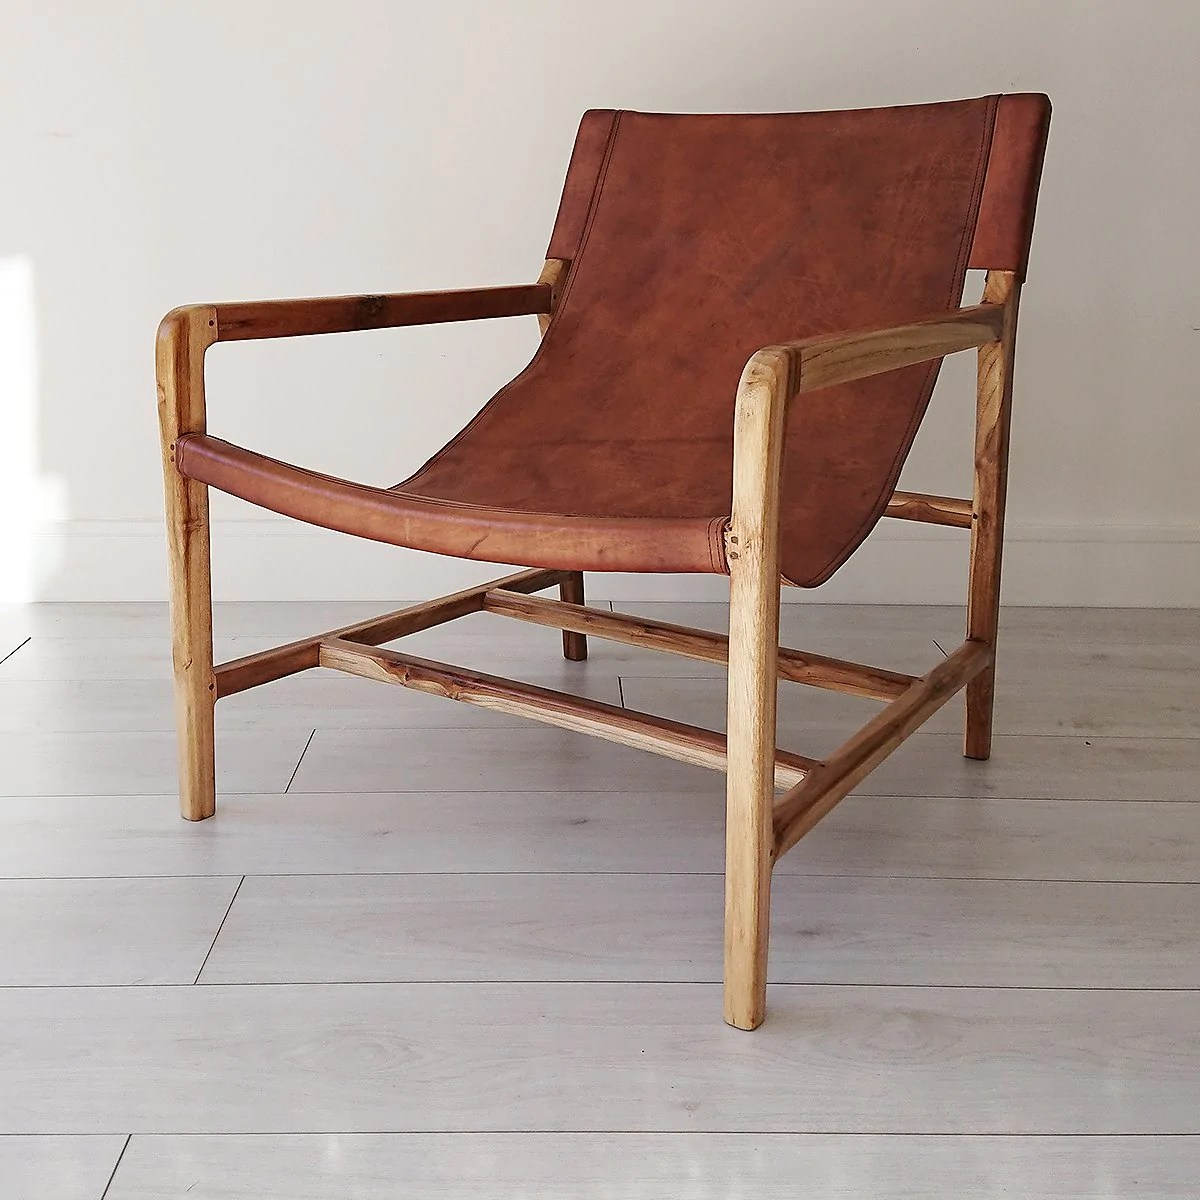 Encouraging Stacy Lear Sling Chair Brown From Souk Collective Stacy Lear Sling Chair Brown From Souk Collective Lear Sling Chair Craigslist Lear Sling Chair Anthropologie houzz-03 Leather Sling Chair